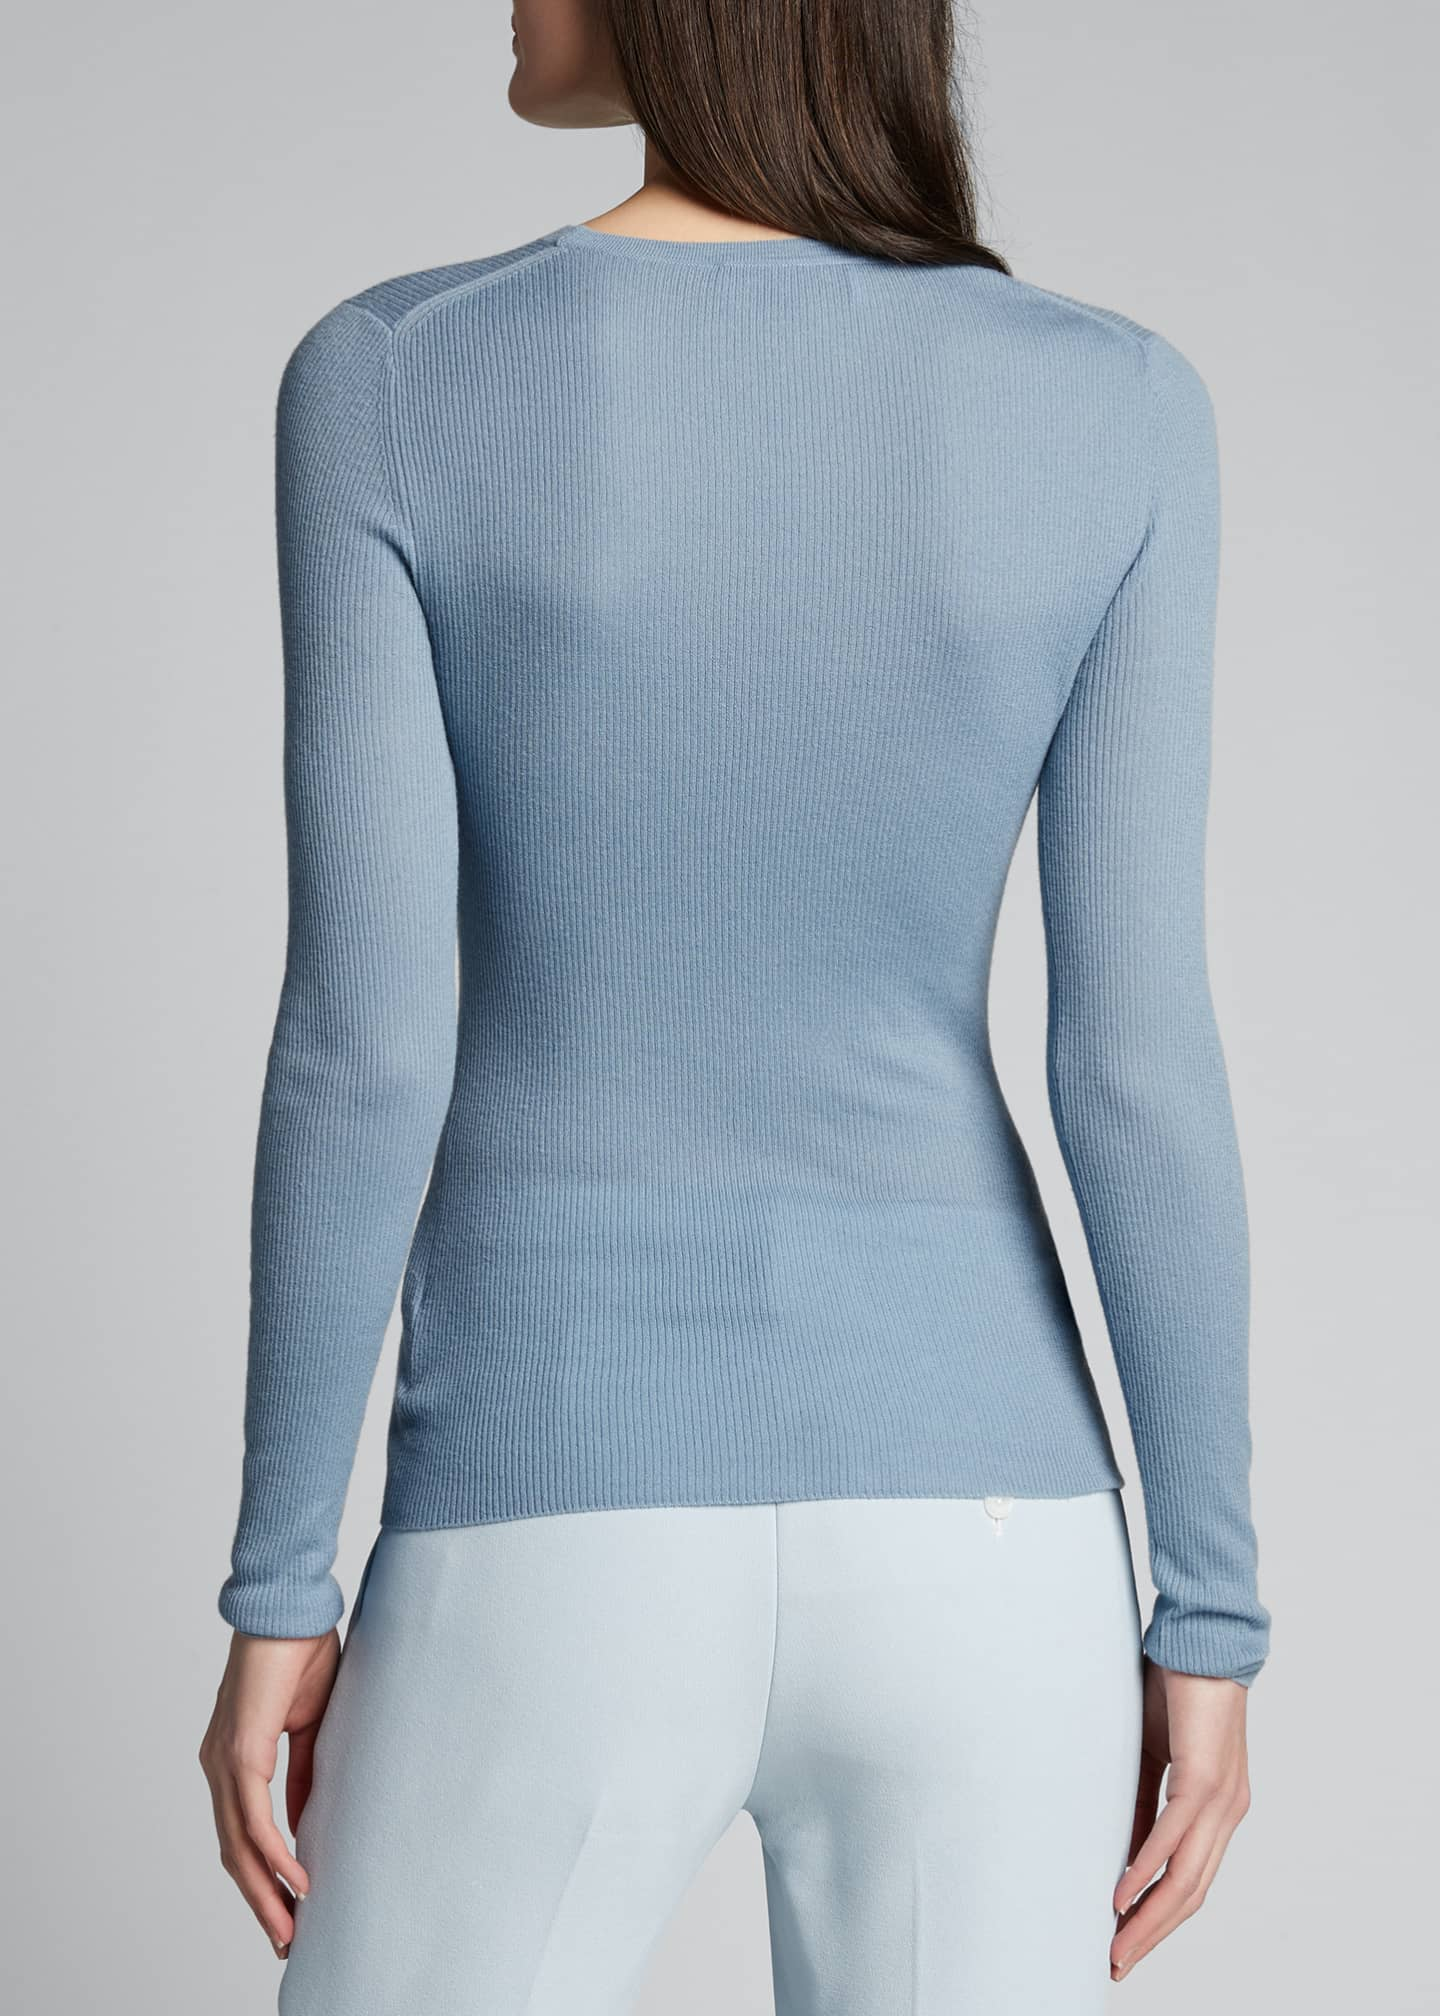 Image 2 of 5: Featherweight Cashmere Sweater